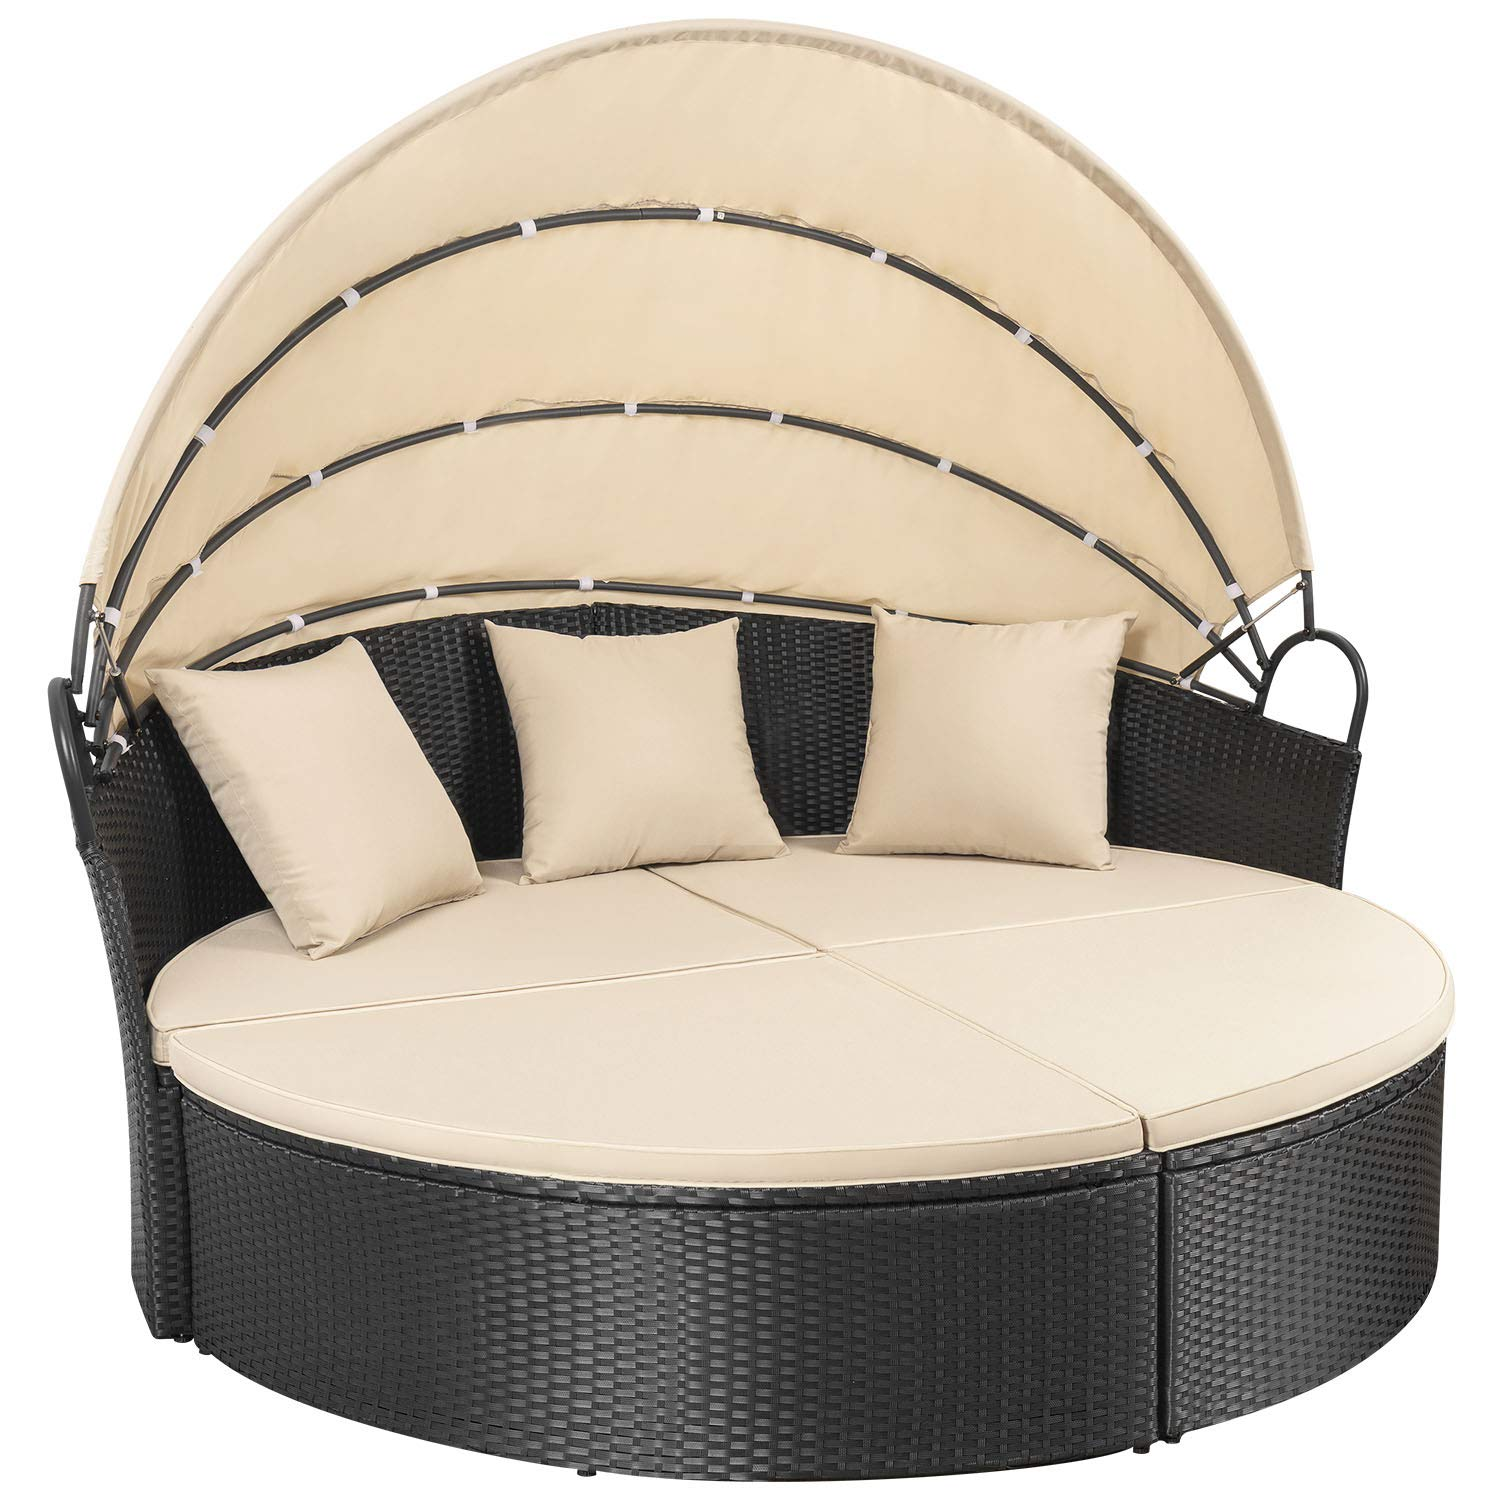 Miraculous Homall Outdoor Patio Round Daybed With Retractable Canopy Wicker Furniture Sectional Seating With Washable Cushions For Patio Backyard Porch Pool Machost Co Dining Chair Design Ideas Machostcouk